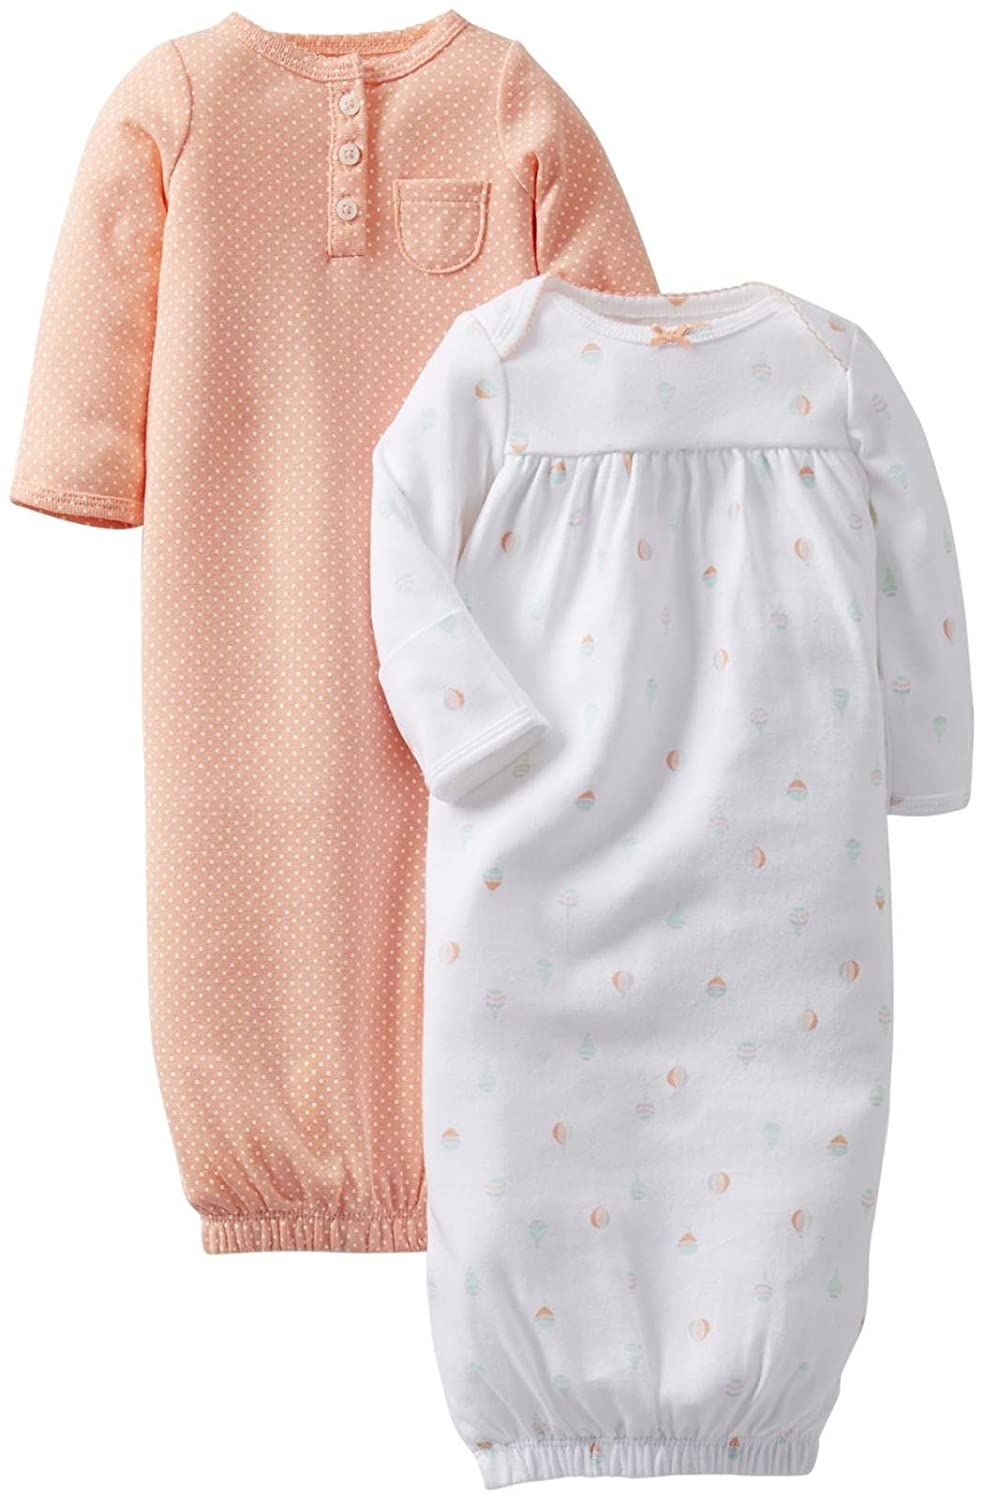 Amazon.com: Carter\'s Baby Girls\' 2 Pack Gowns (Baby) - White/Pink ...